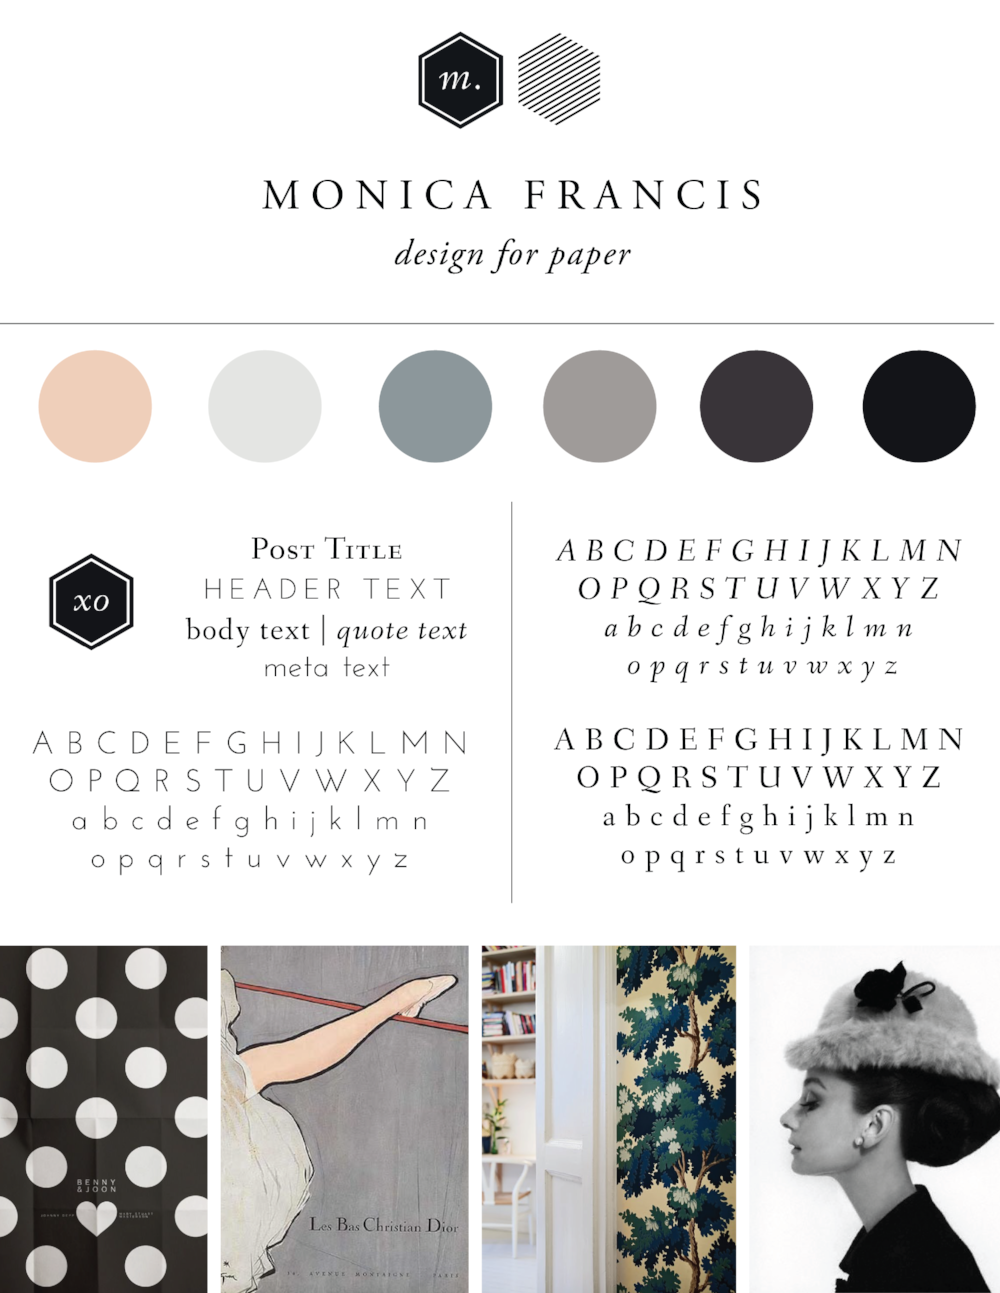 Brand Identity 2015 by Monica Francis Design